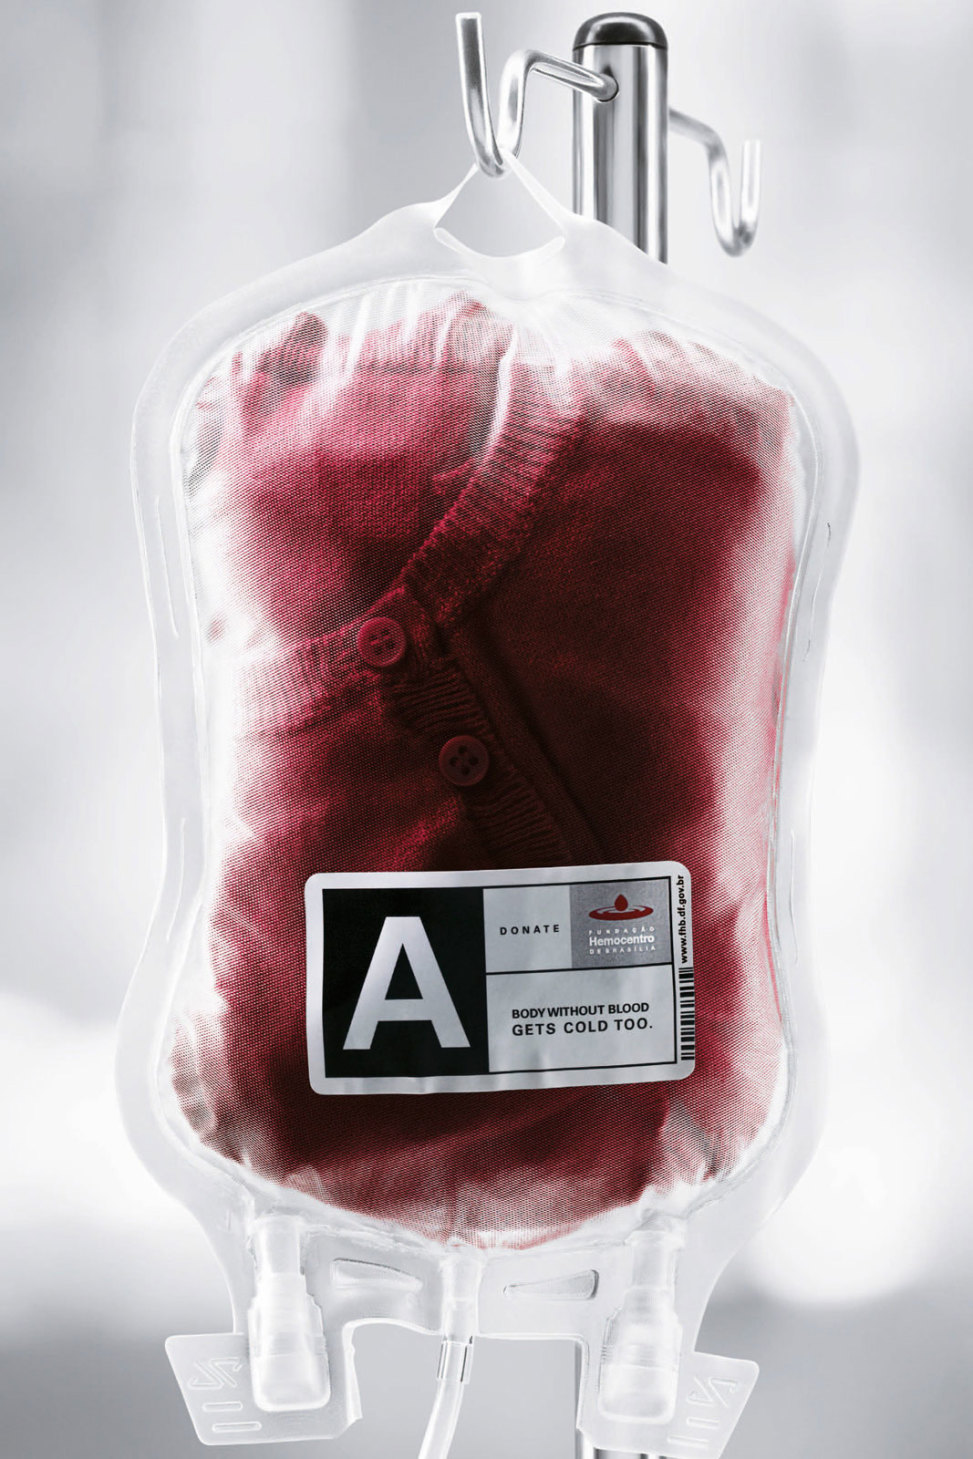 blood-donor